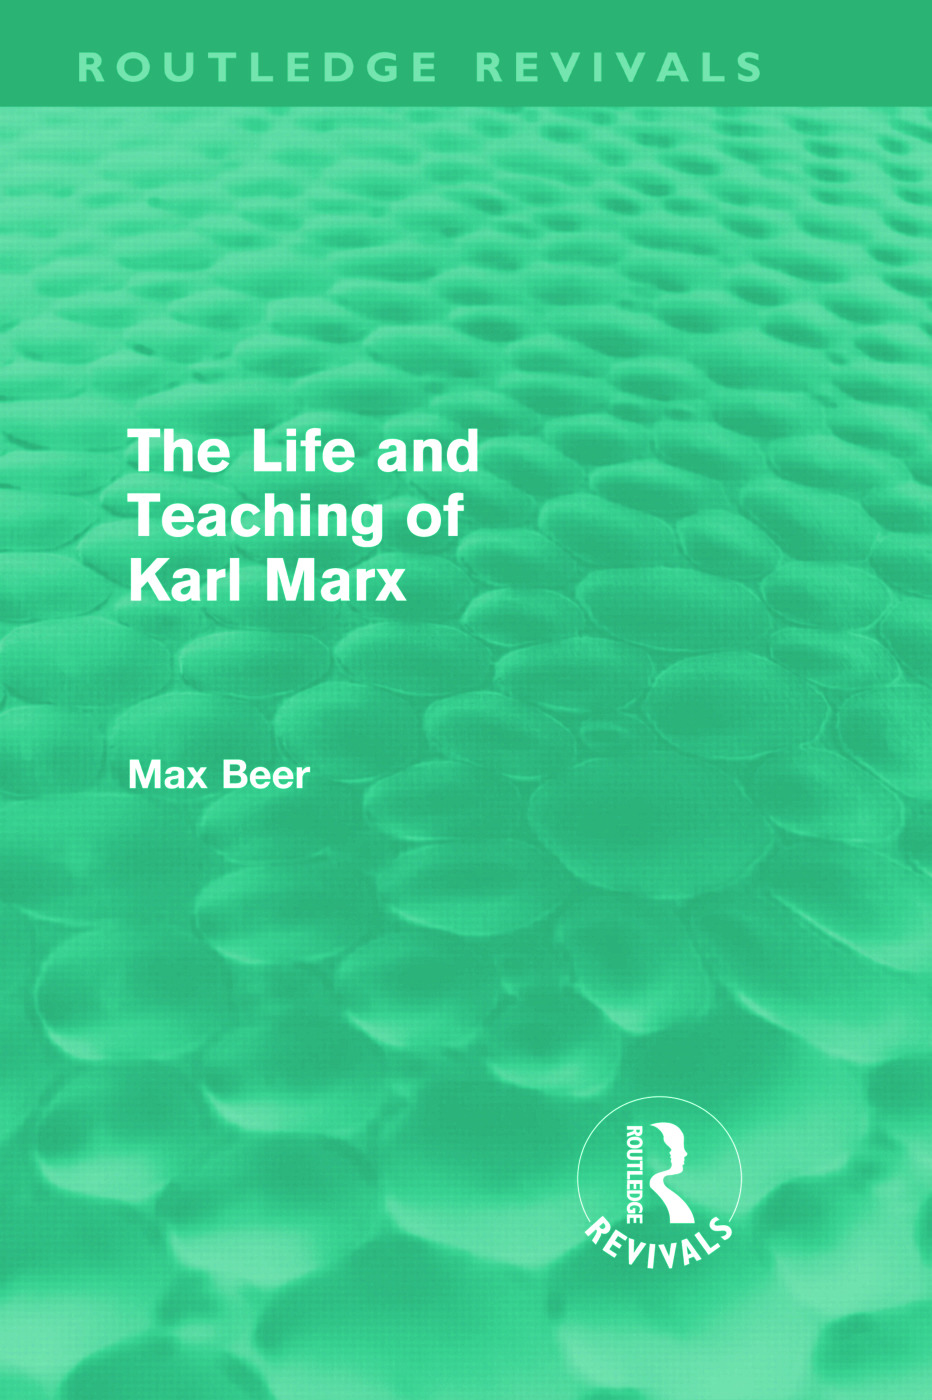 The Life and Teaching of Karl Marx (Routledge Revivals) book cover